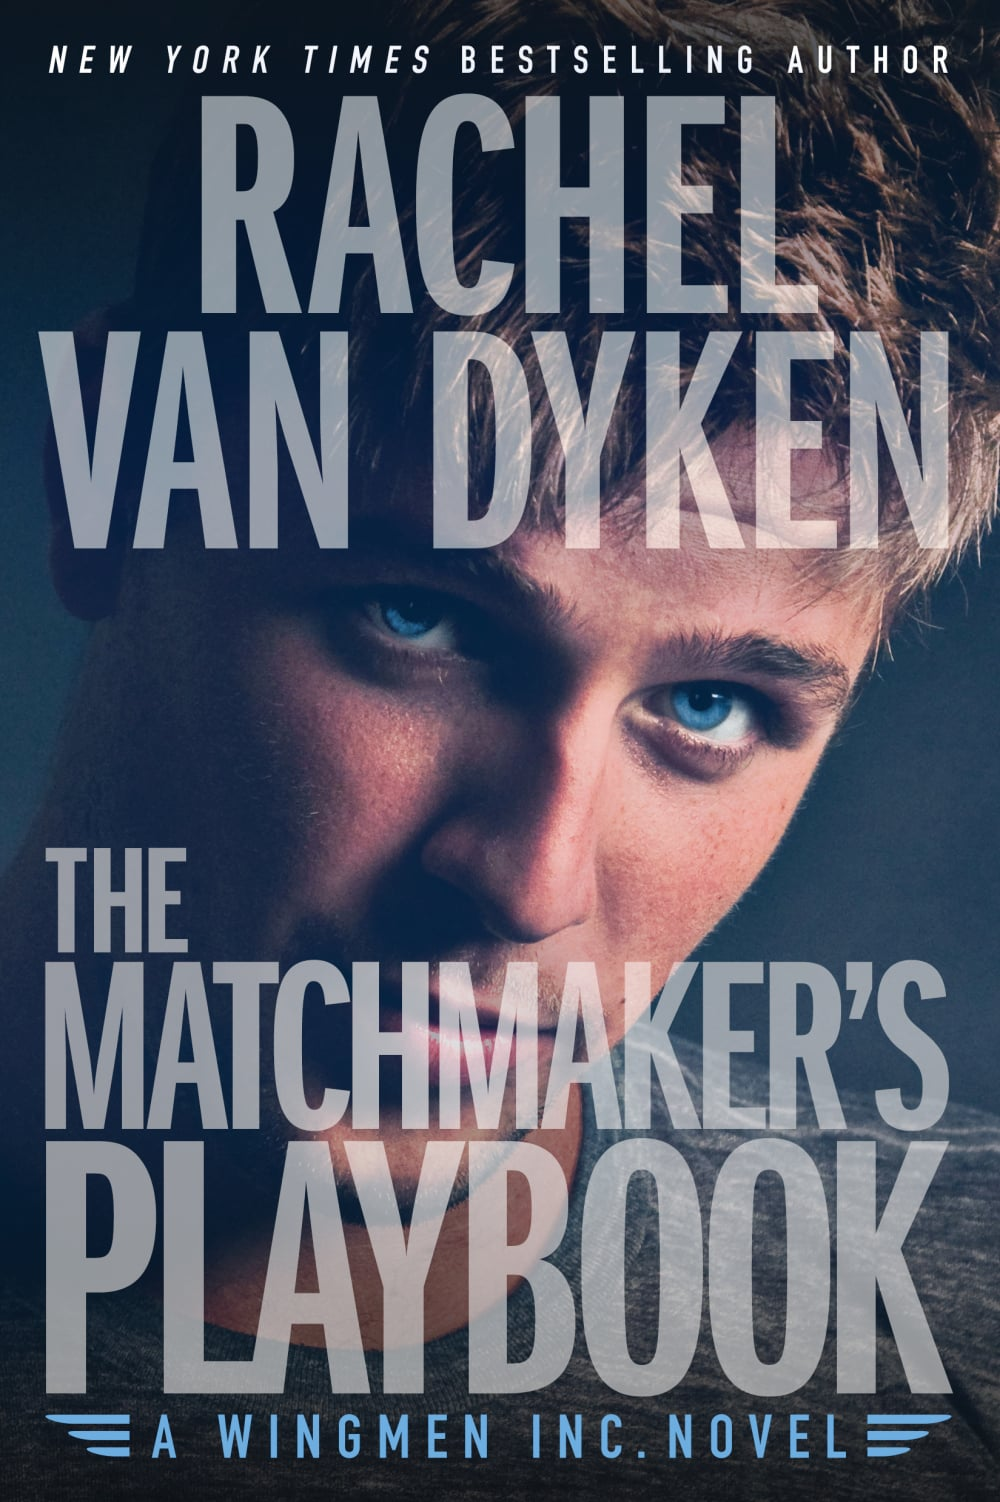 the matchmaker's playbook cover.jpg